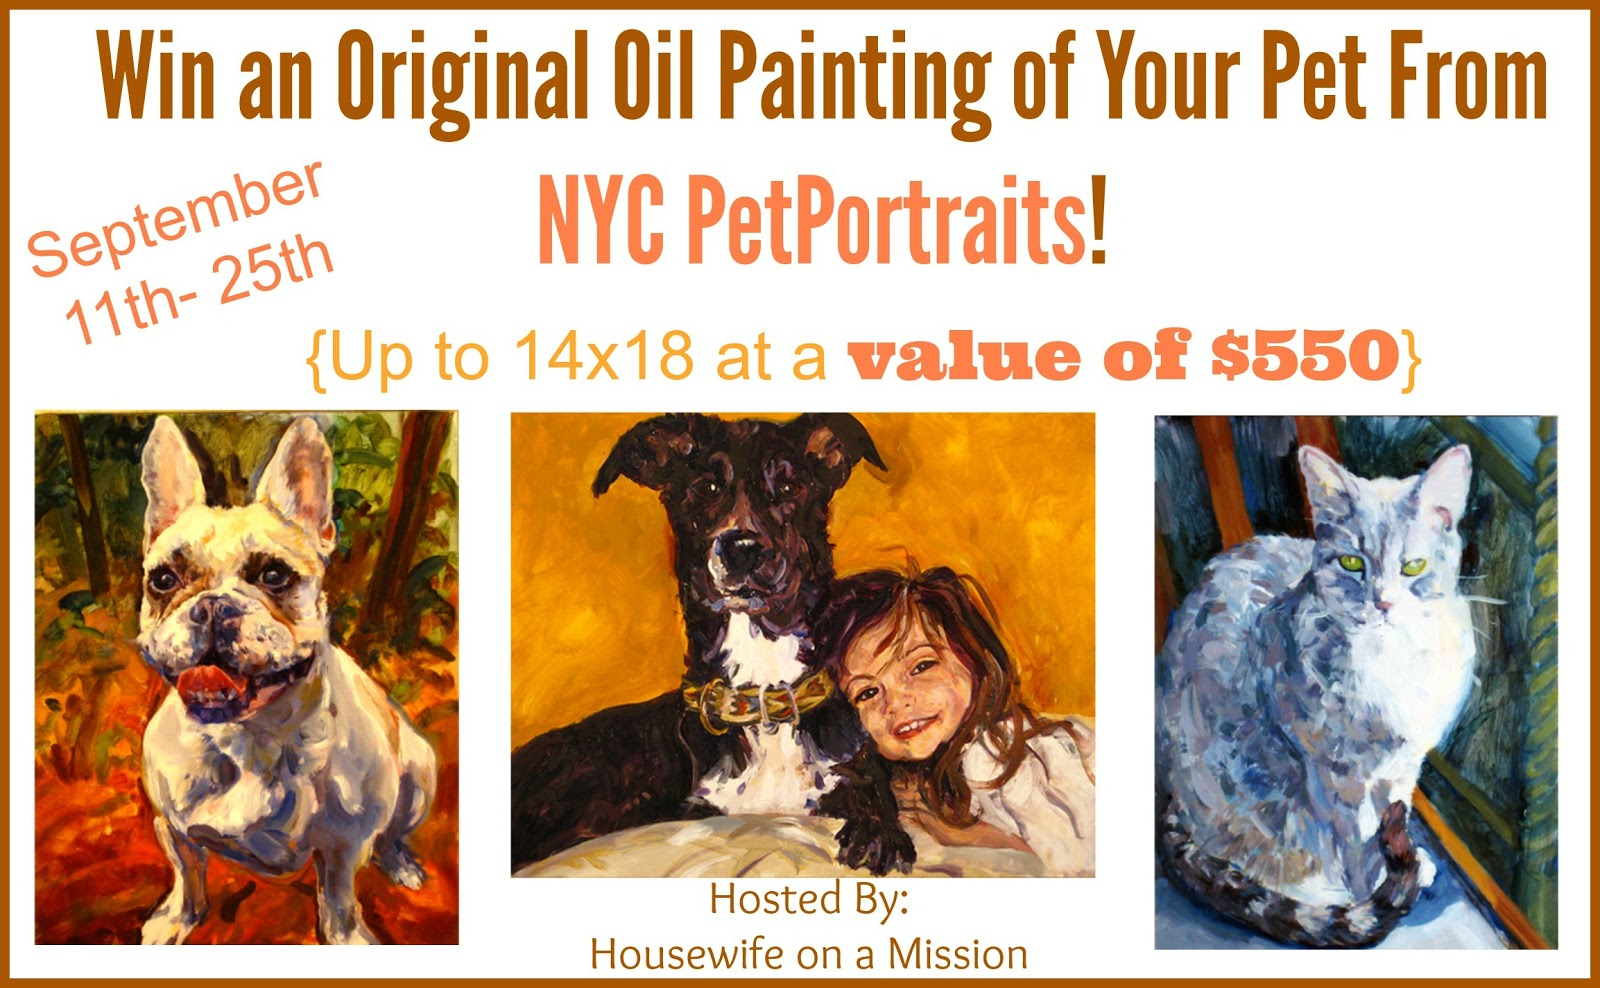 Enter the NYC PetPortraits Giveaway. Ends 9/25.